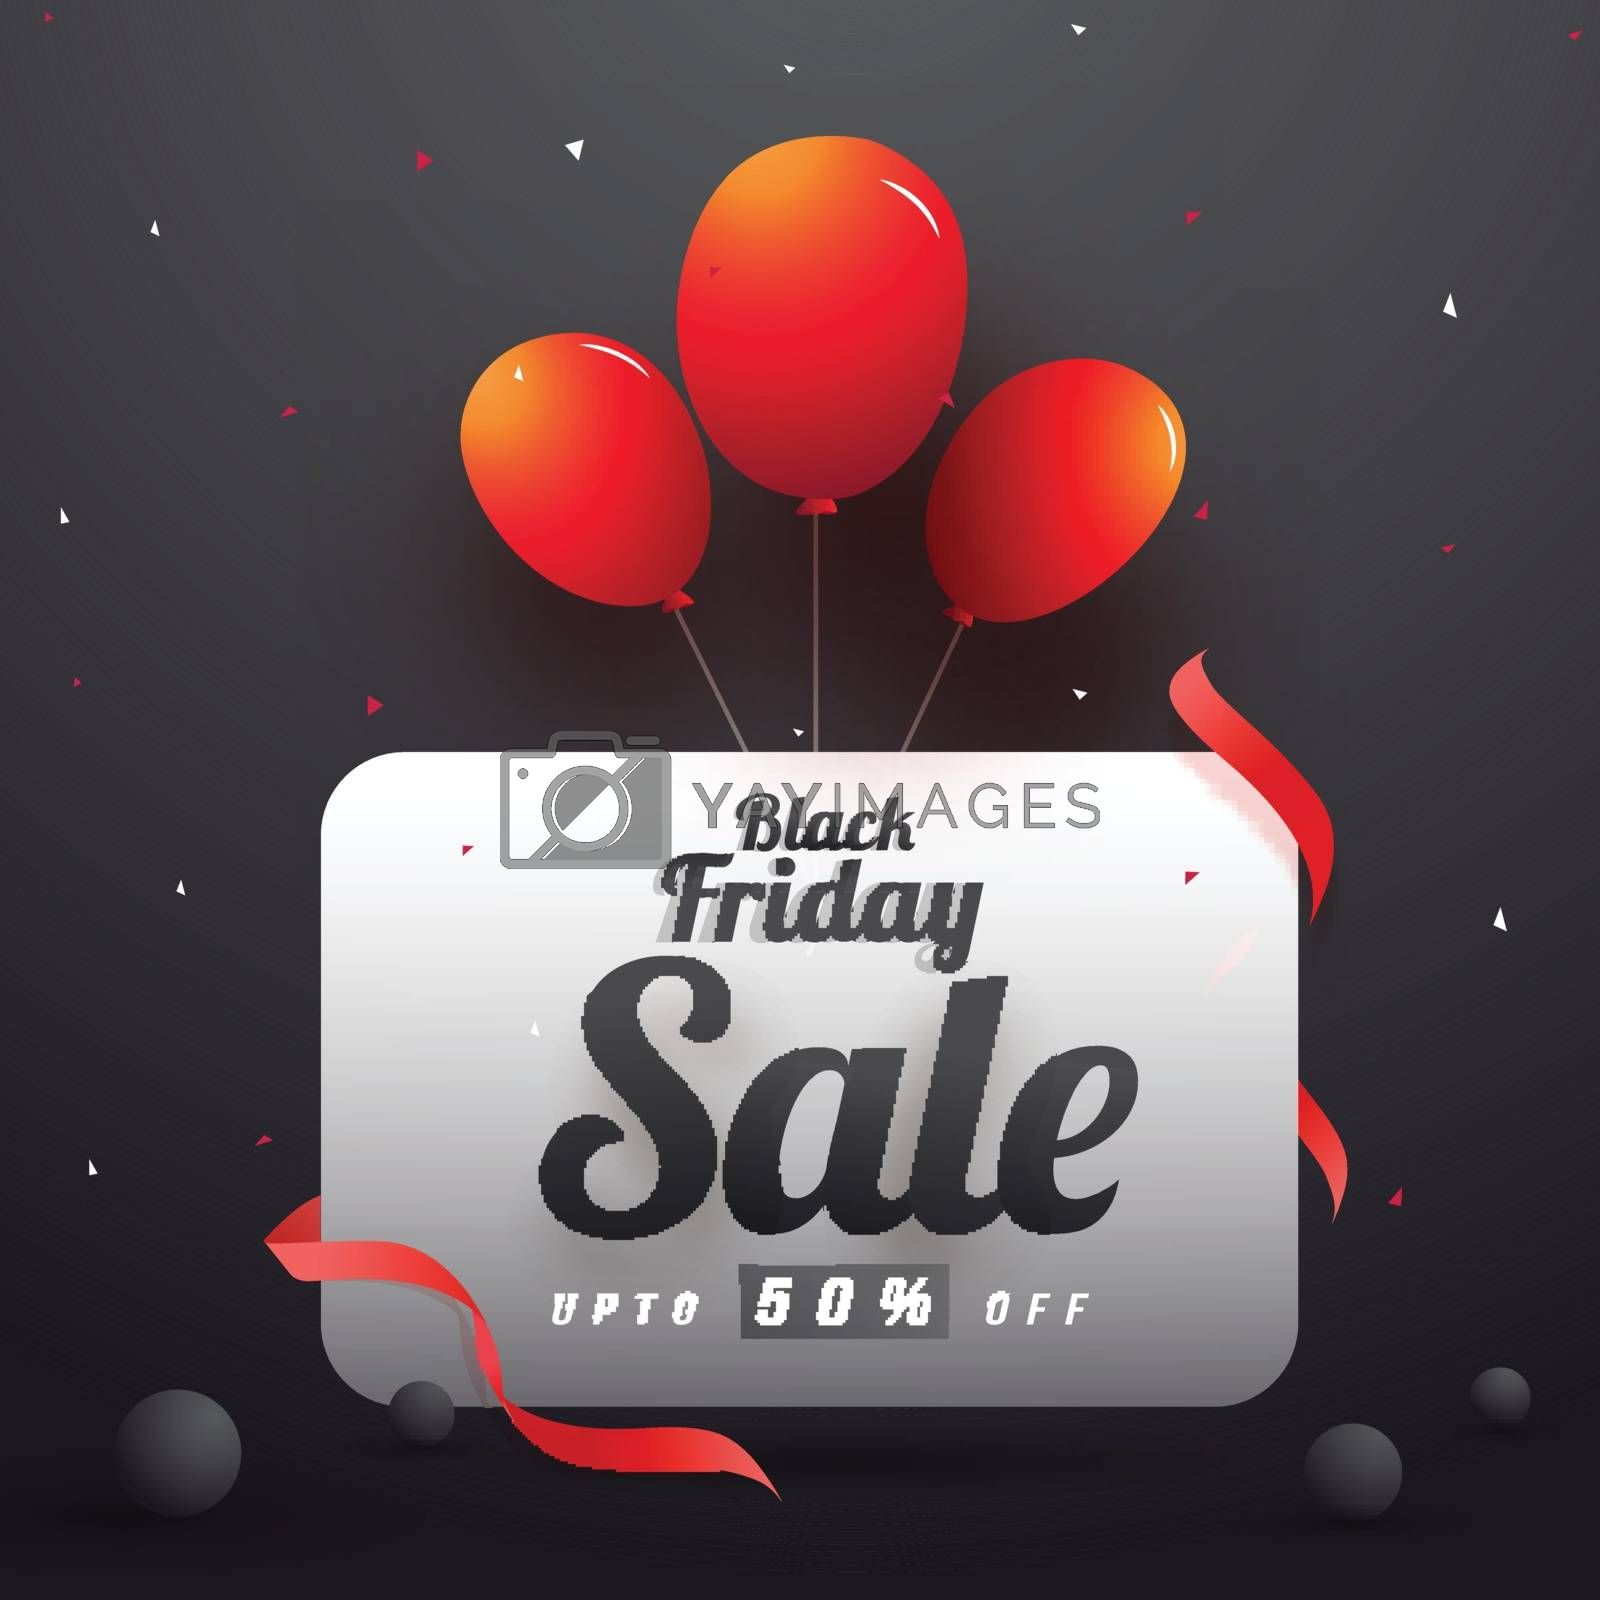 Black Friday Sale template or flyer design with 50% discount offer, decorative balloons and ribbon on glossy black background.